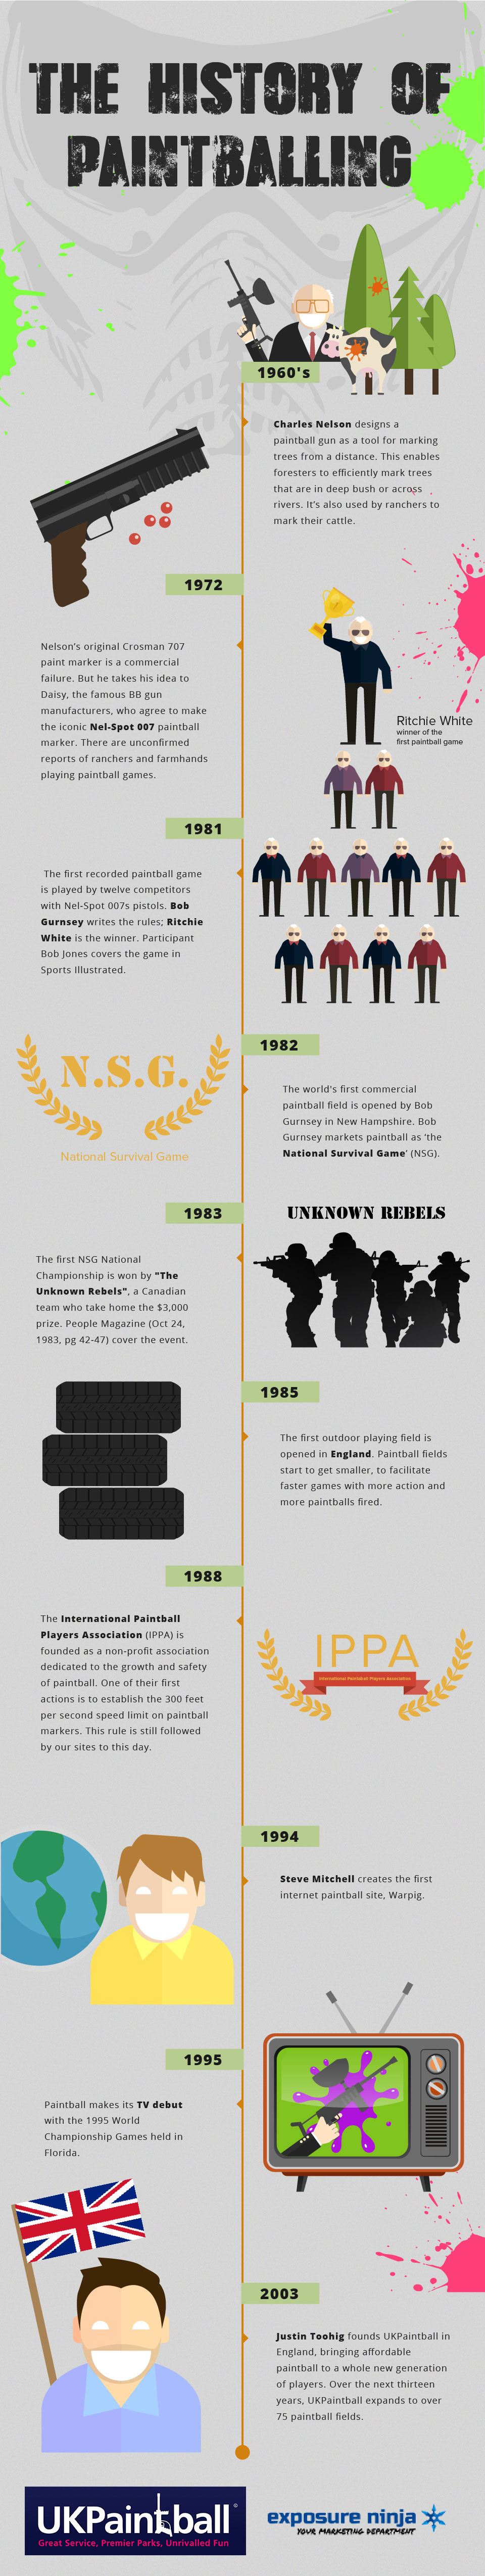 Paintballing-History-Infographic